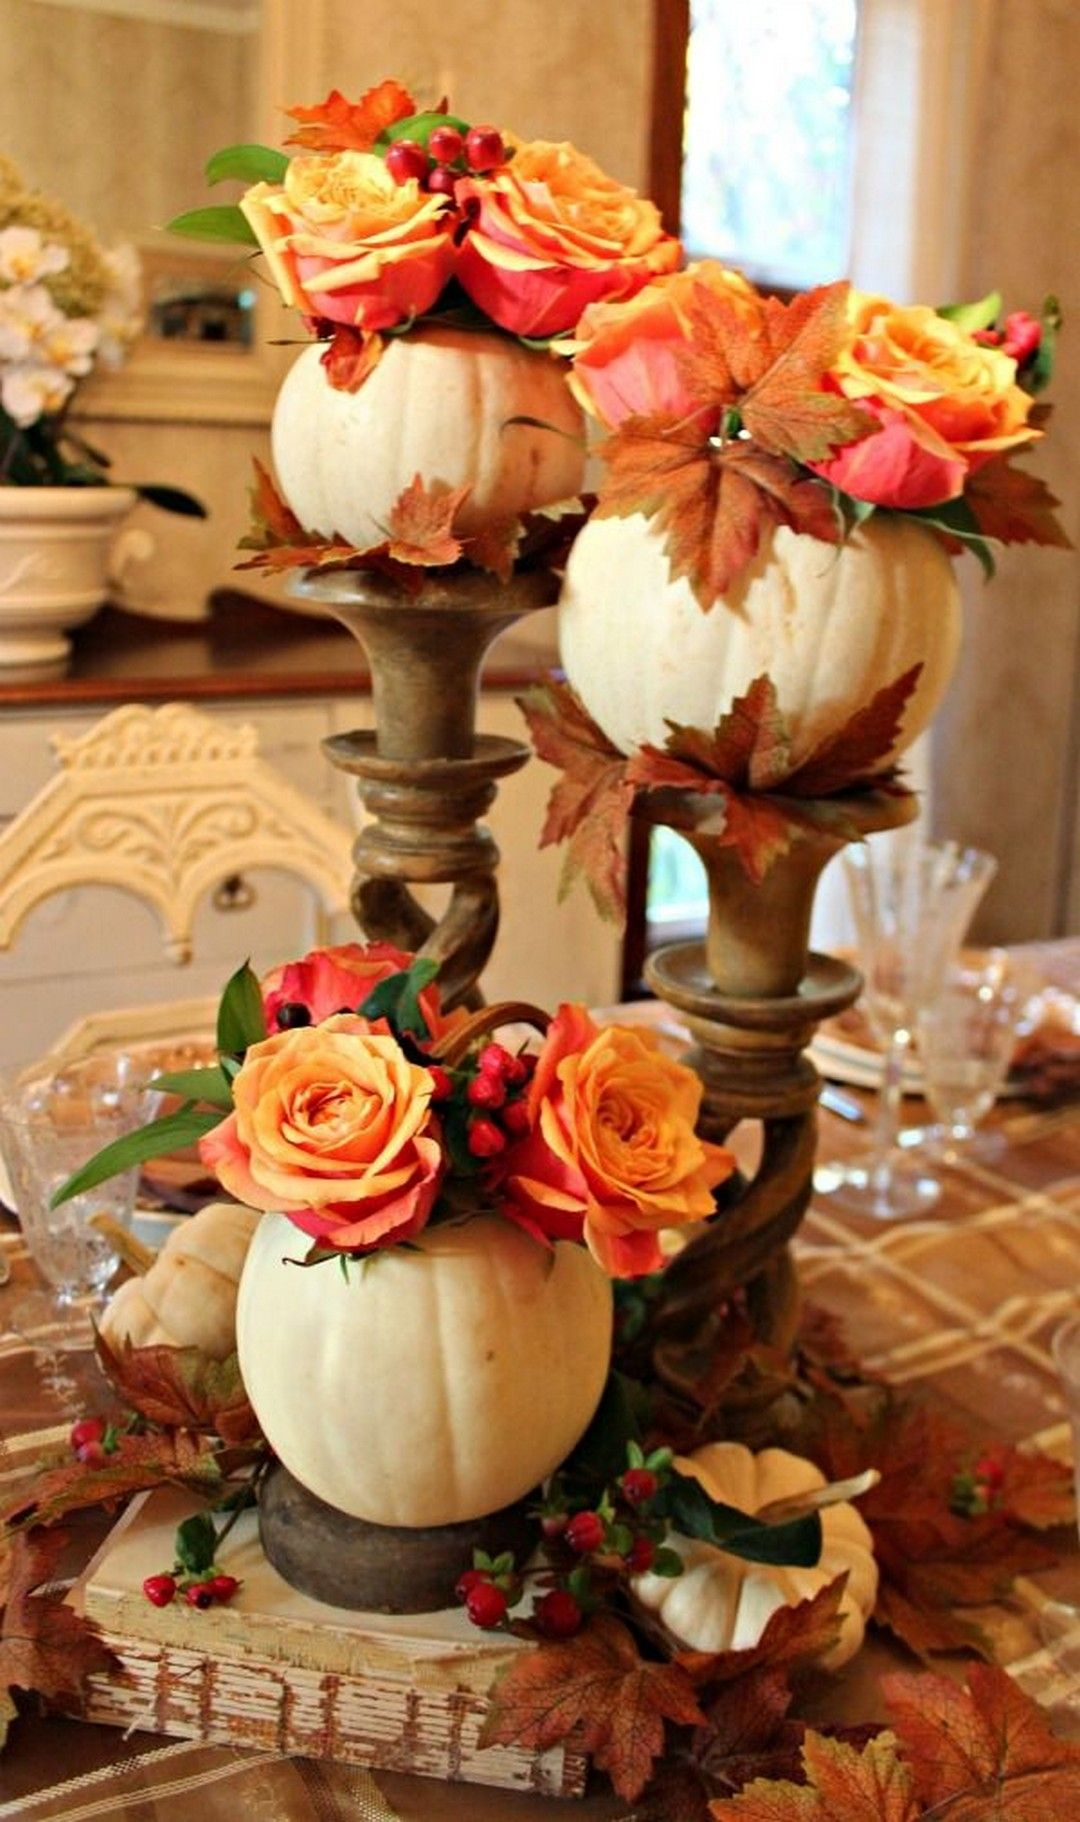 25 Simple and Creative DIY Thanksgiving Decorations